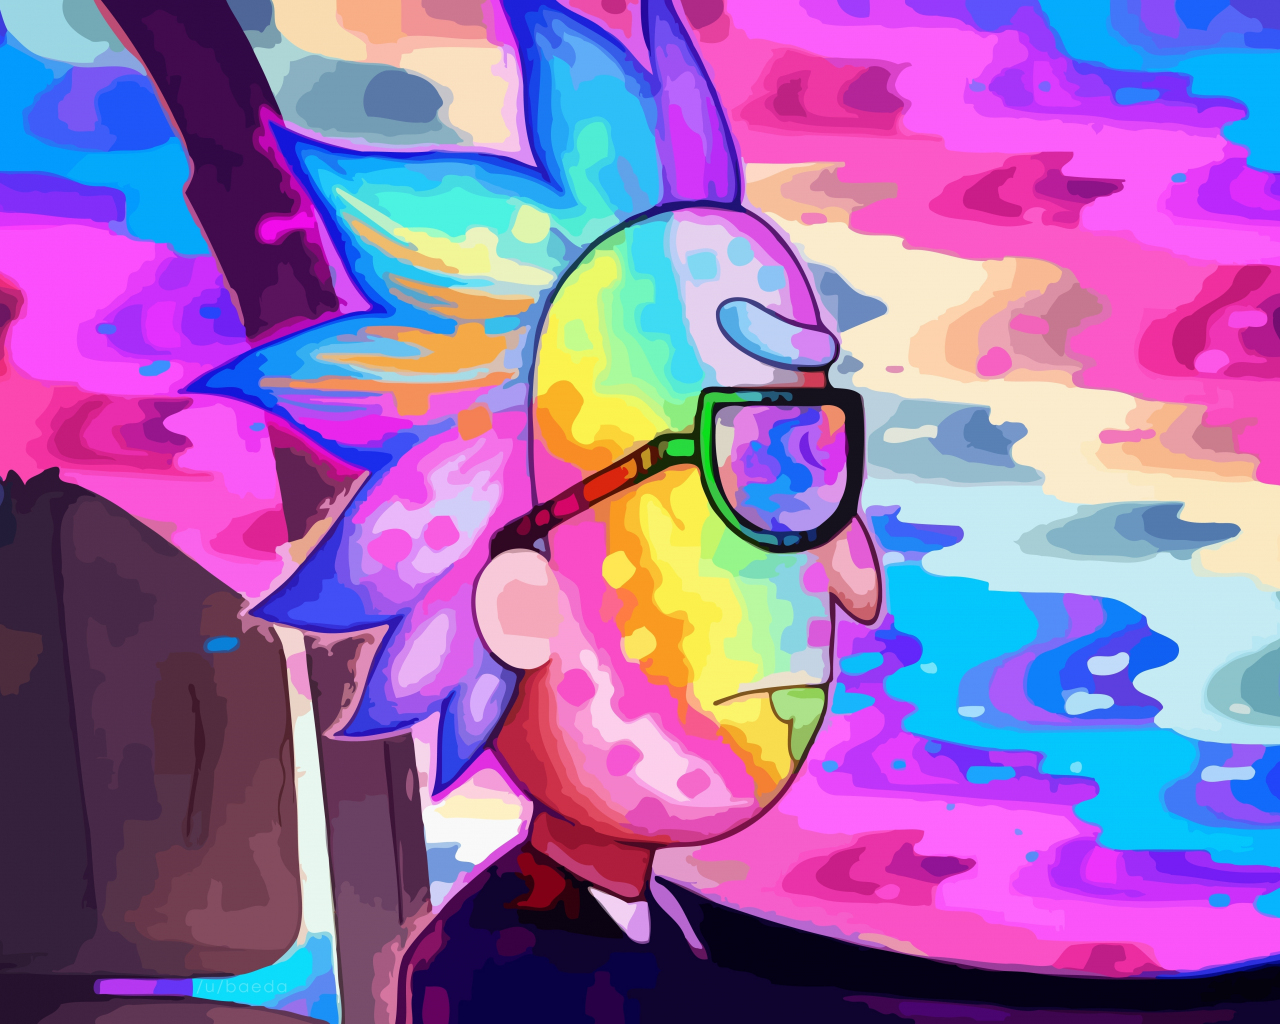 Download 1280x1024 wallpaper rick and morty rick drive colorful standard 5 4 fullscreen - Rick and morty download ...